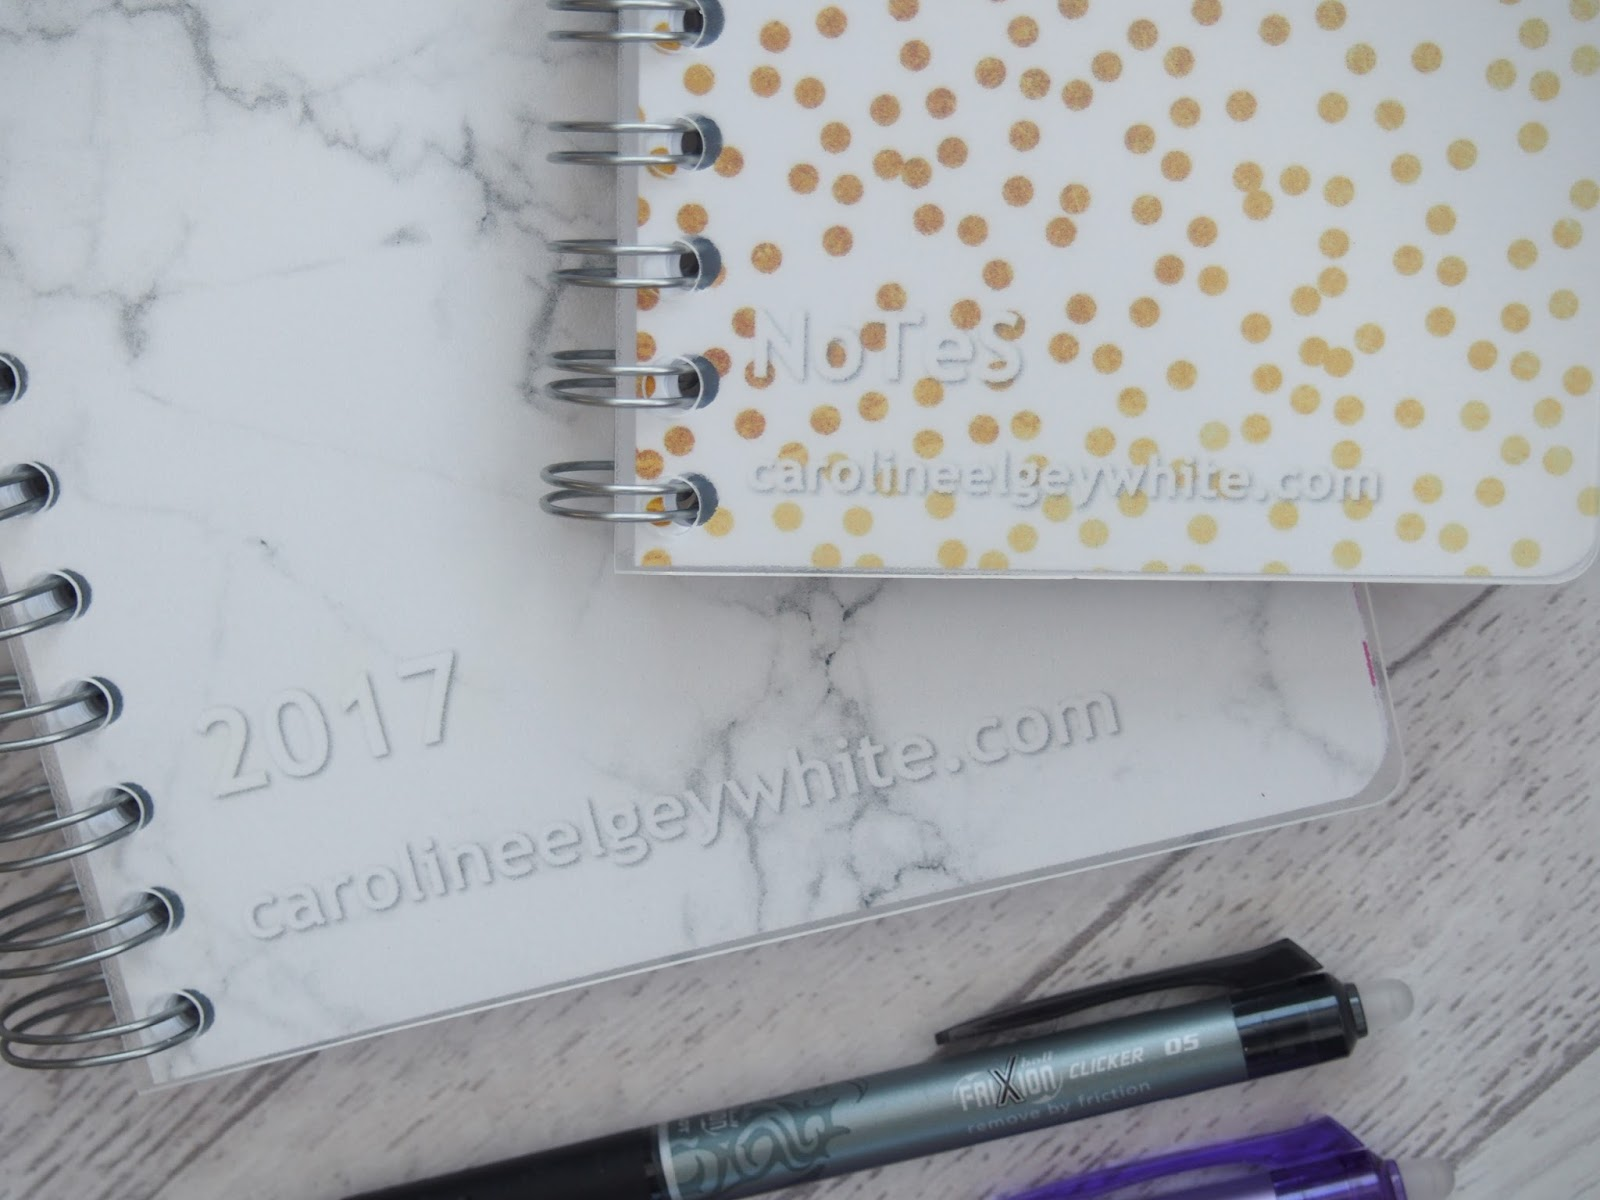 Personal Planner diary and notebook